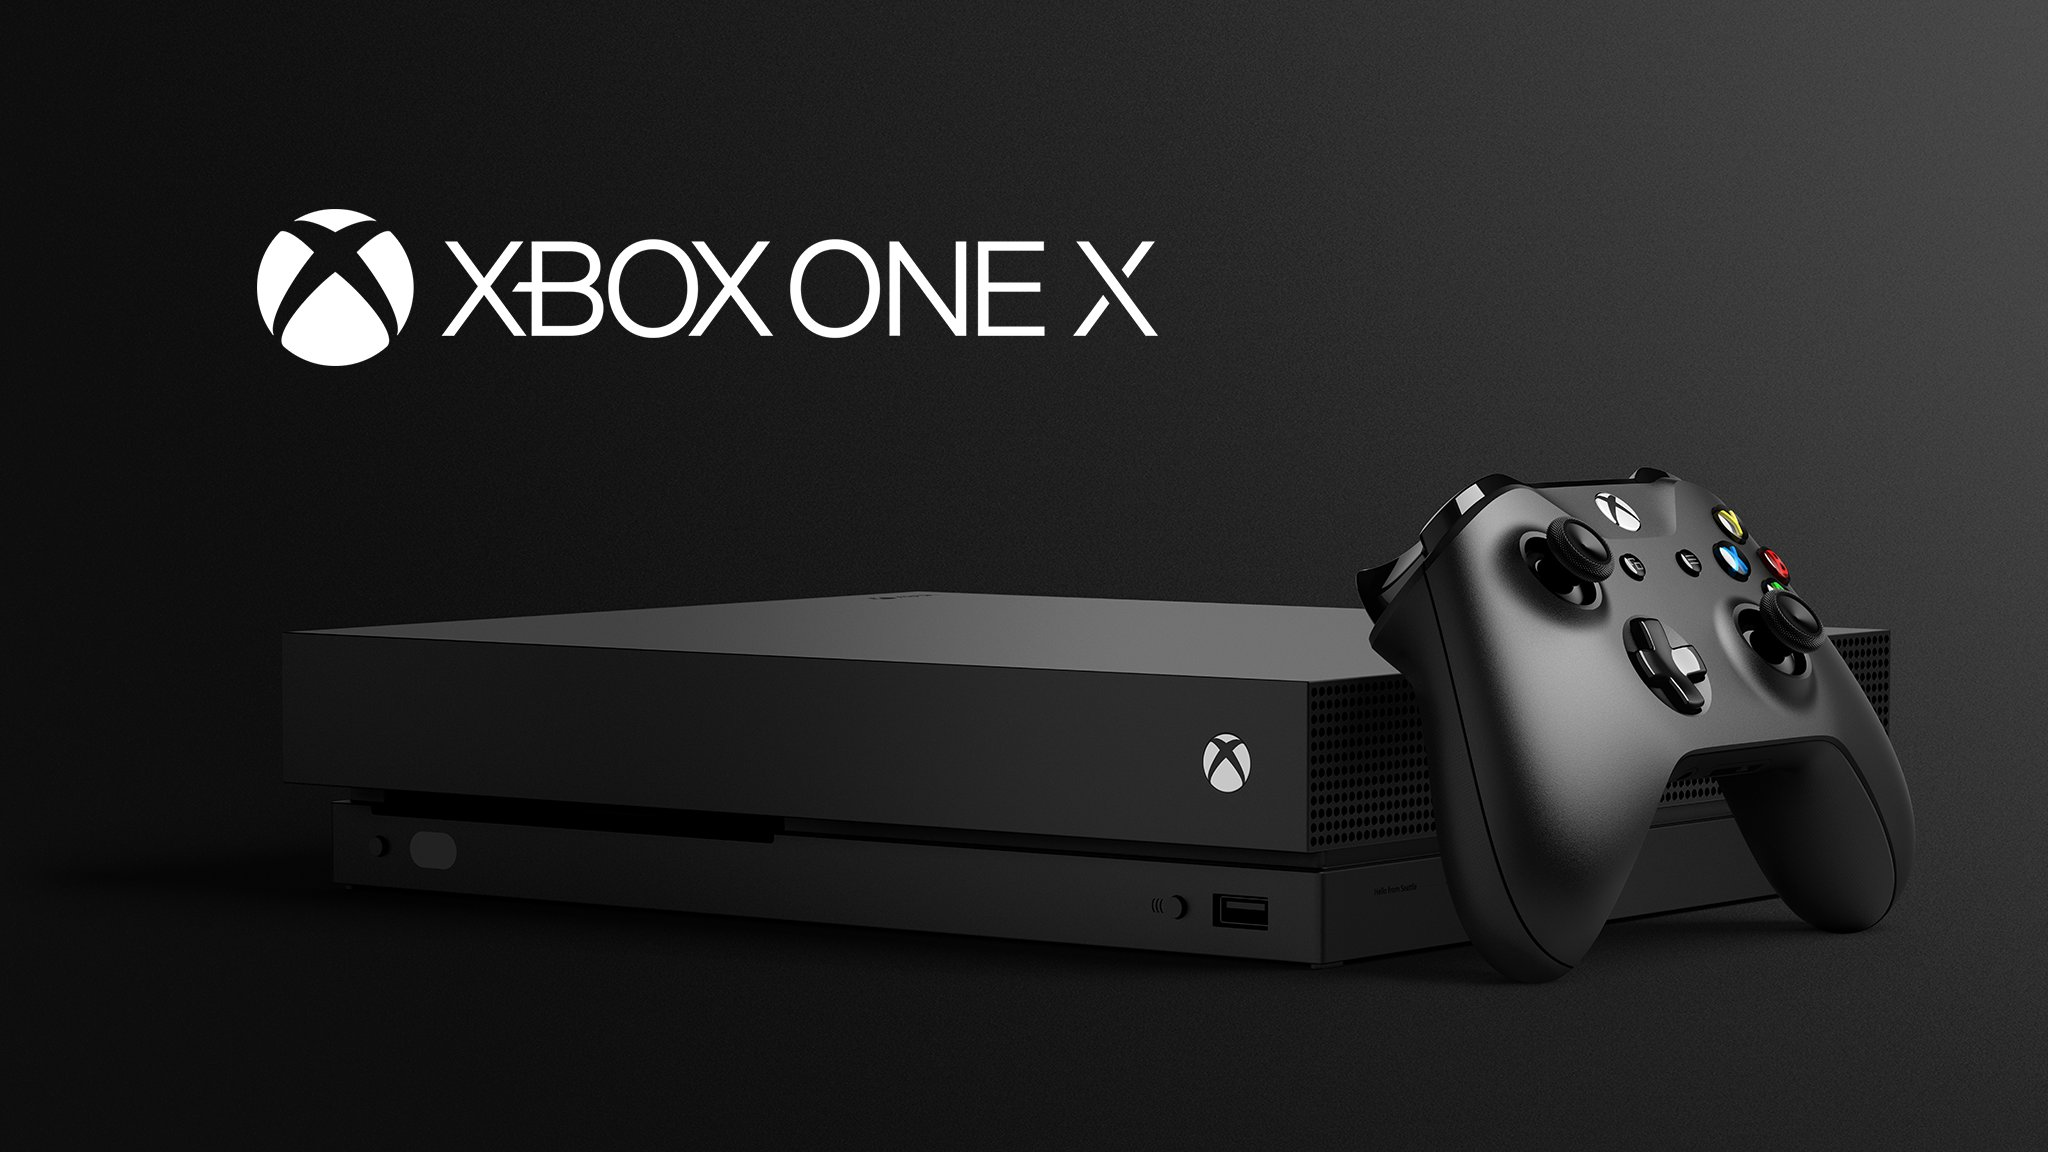 Photo of XBox One X Specifications And Price In Nigeria And Kenya